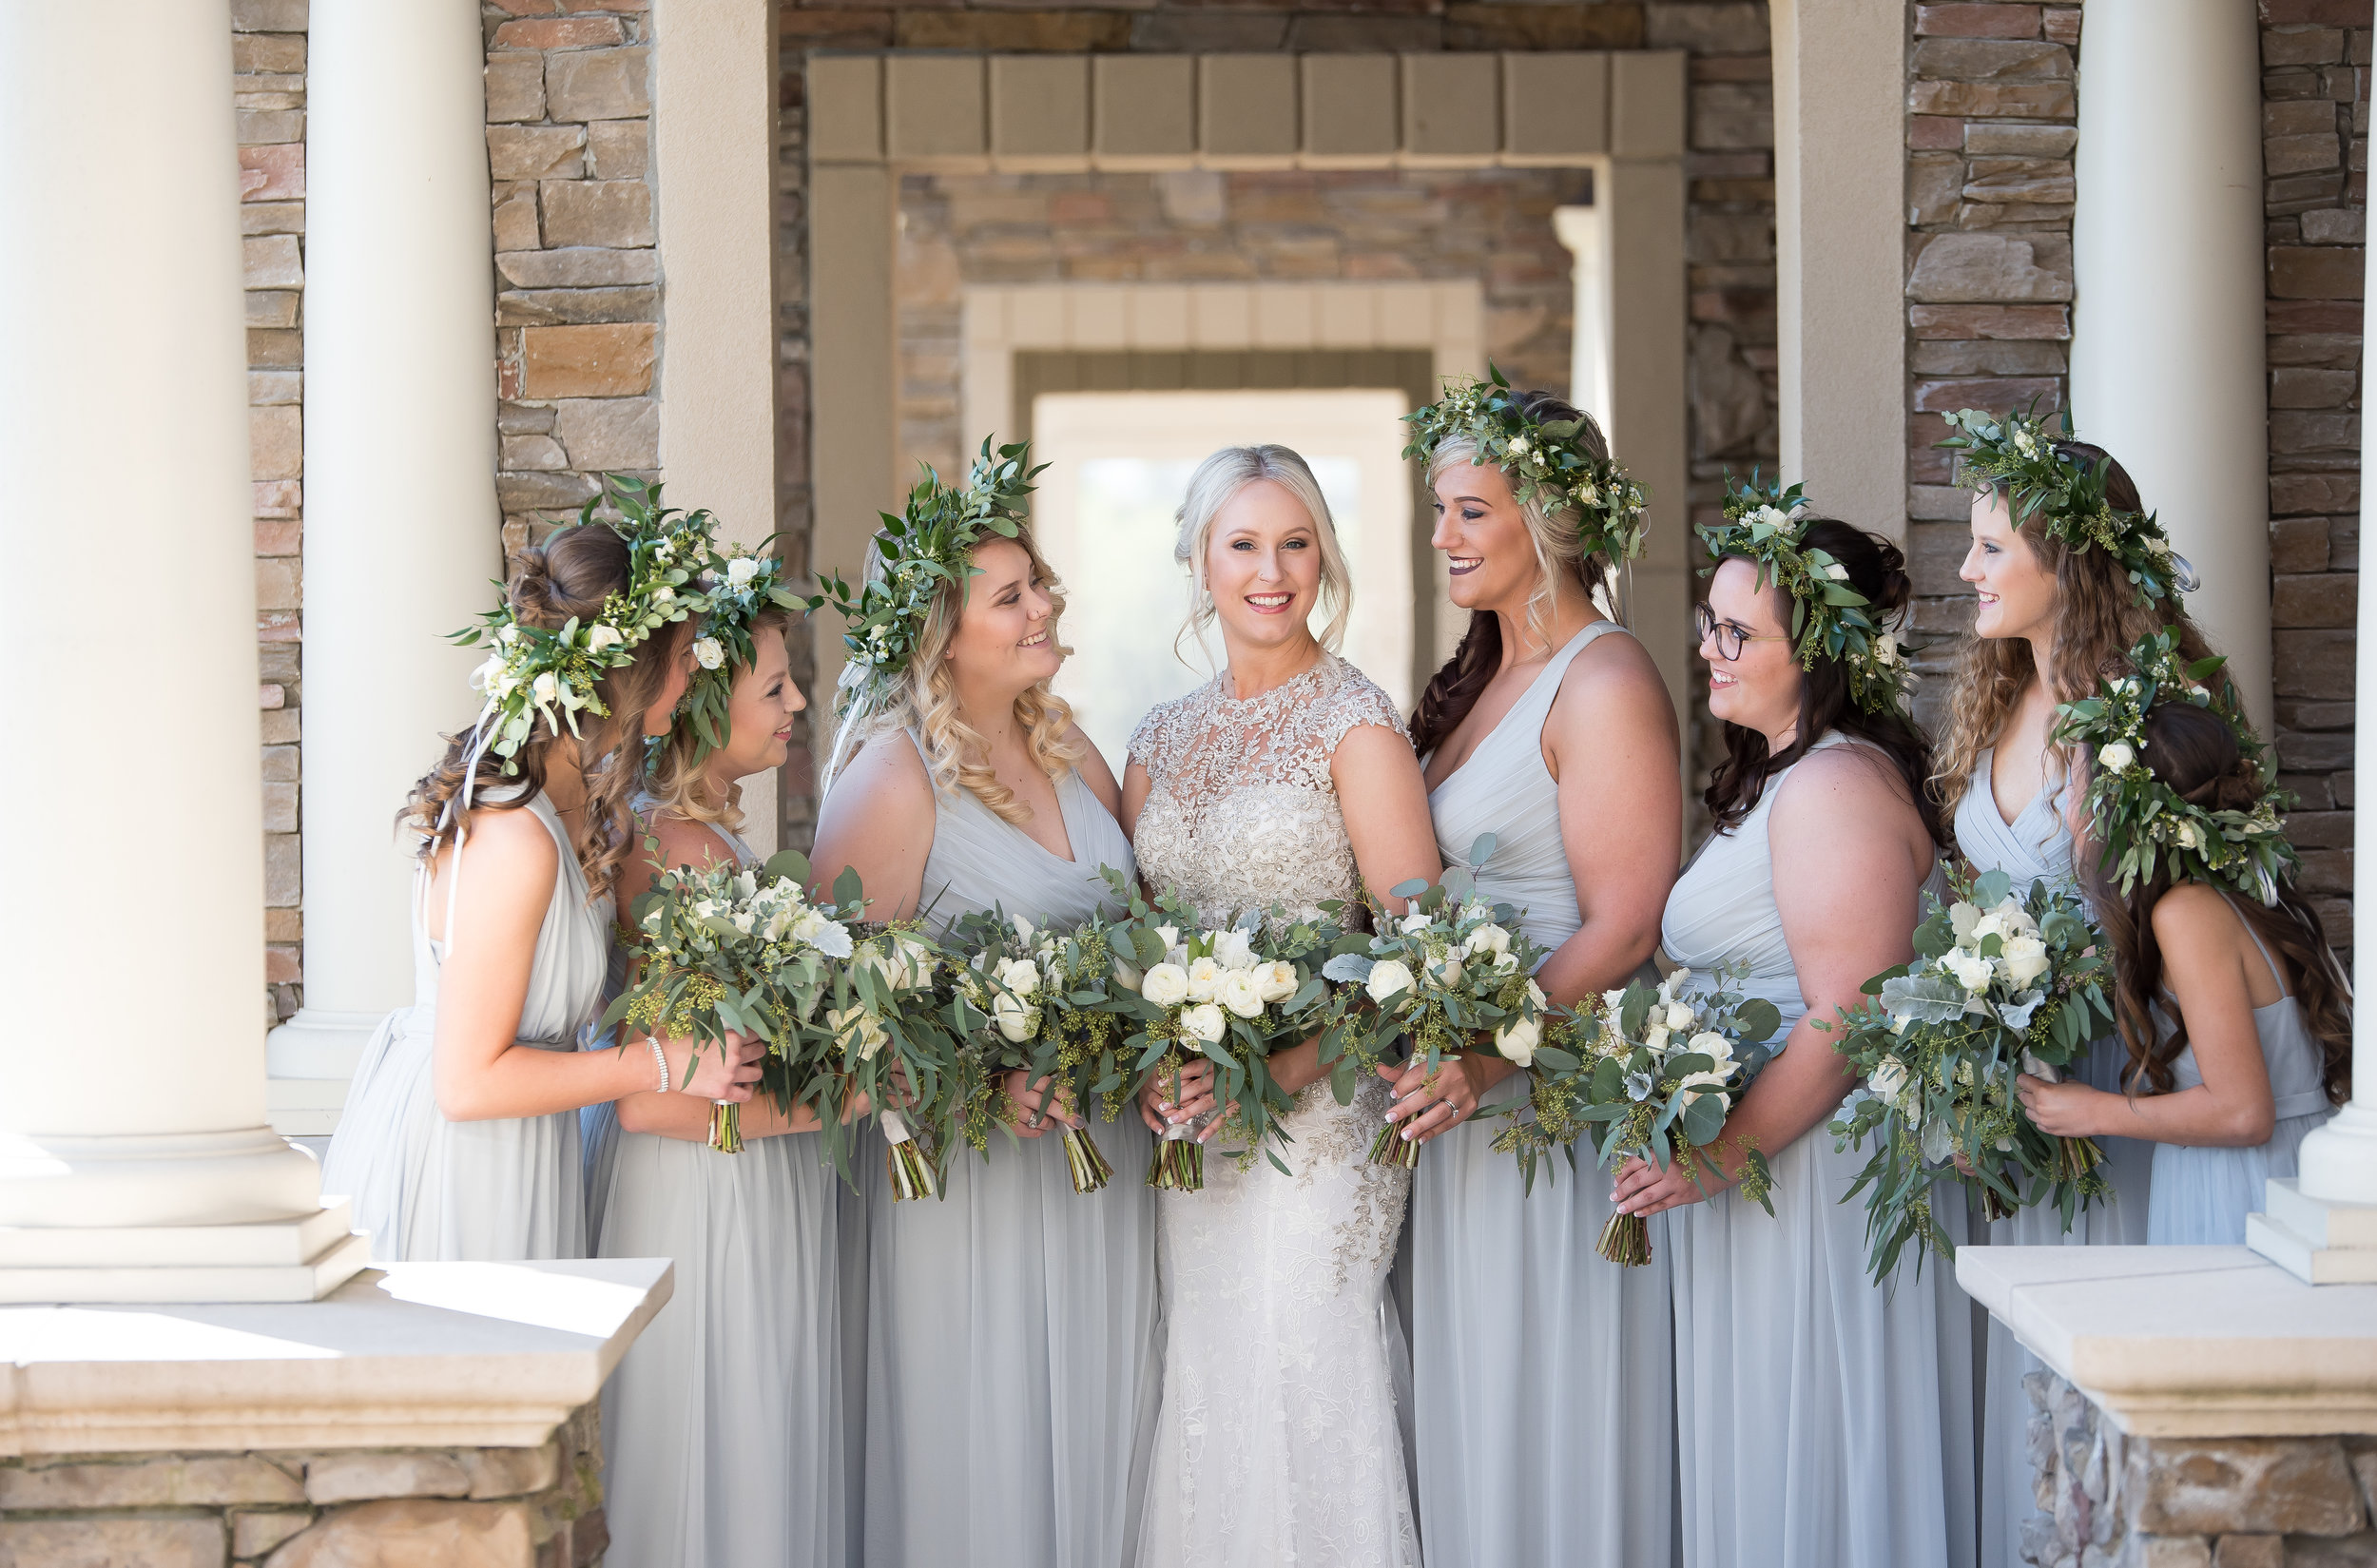 Childress Vineyards | Wedding Venues in the Triad | Best Wedding Venues | High Point Wedding Photographer